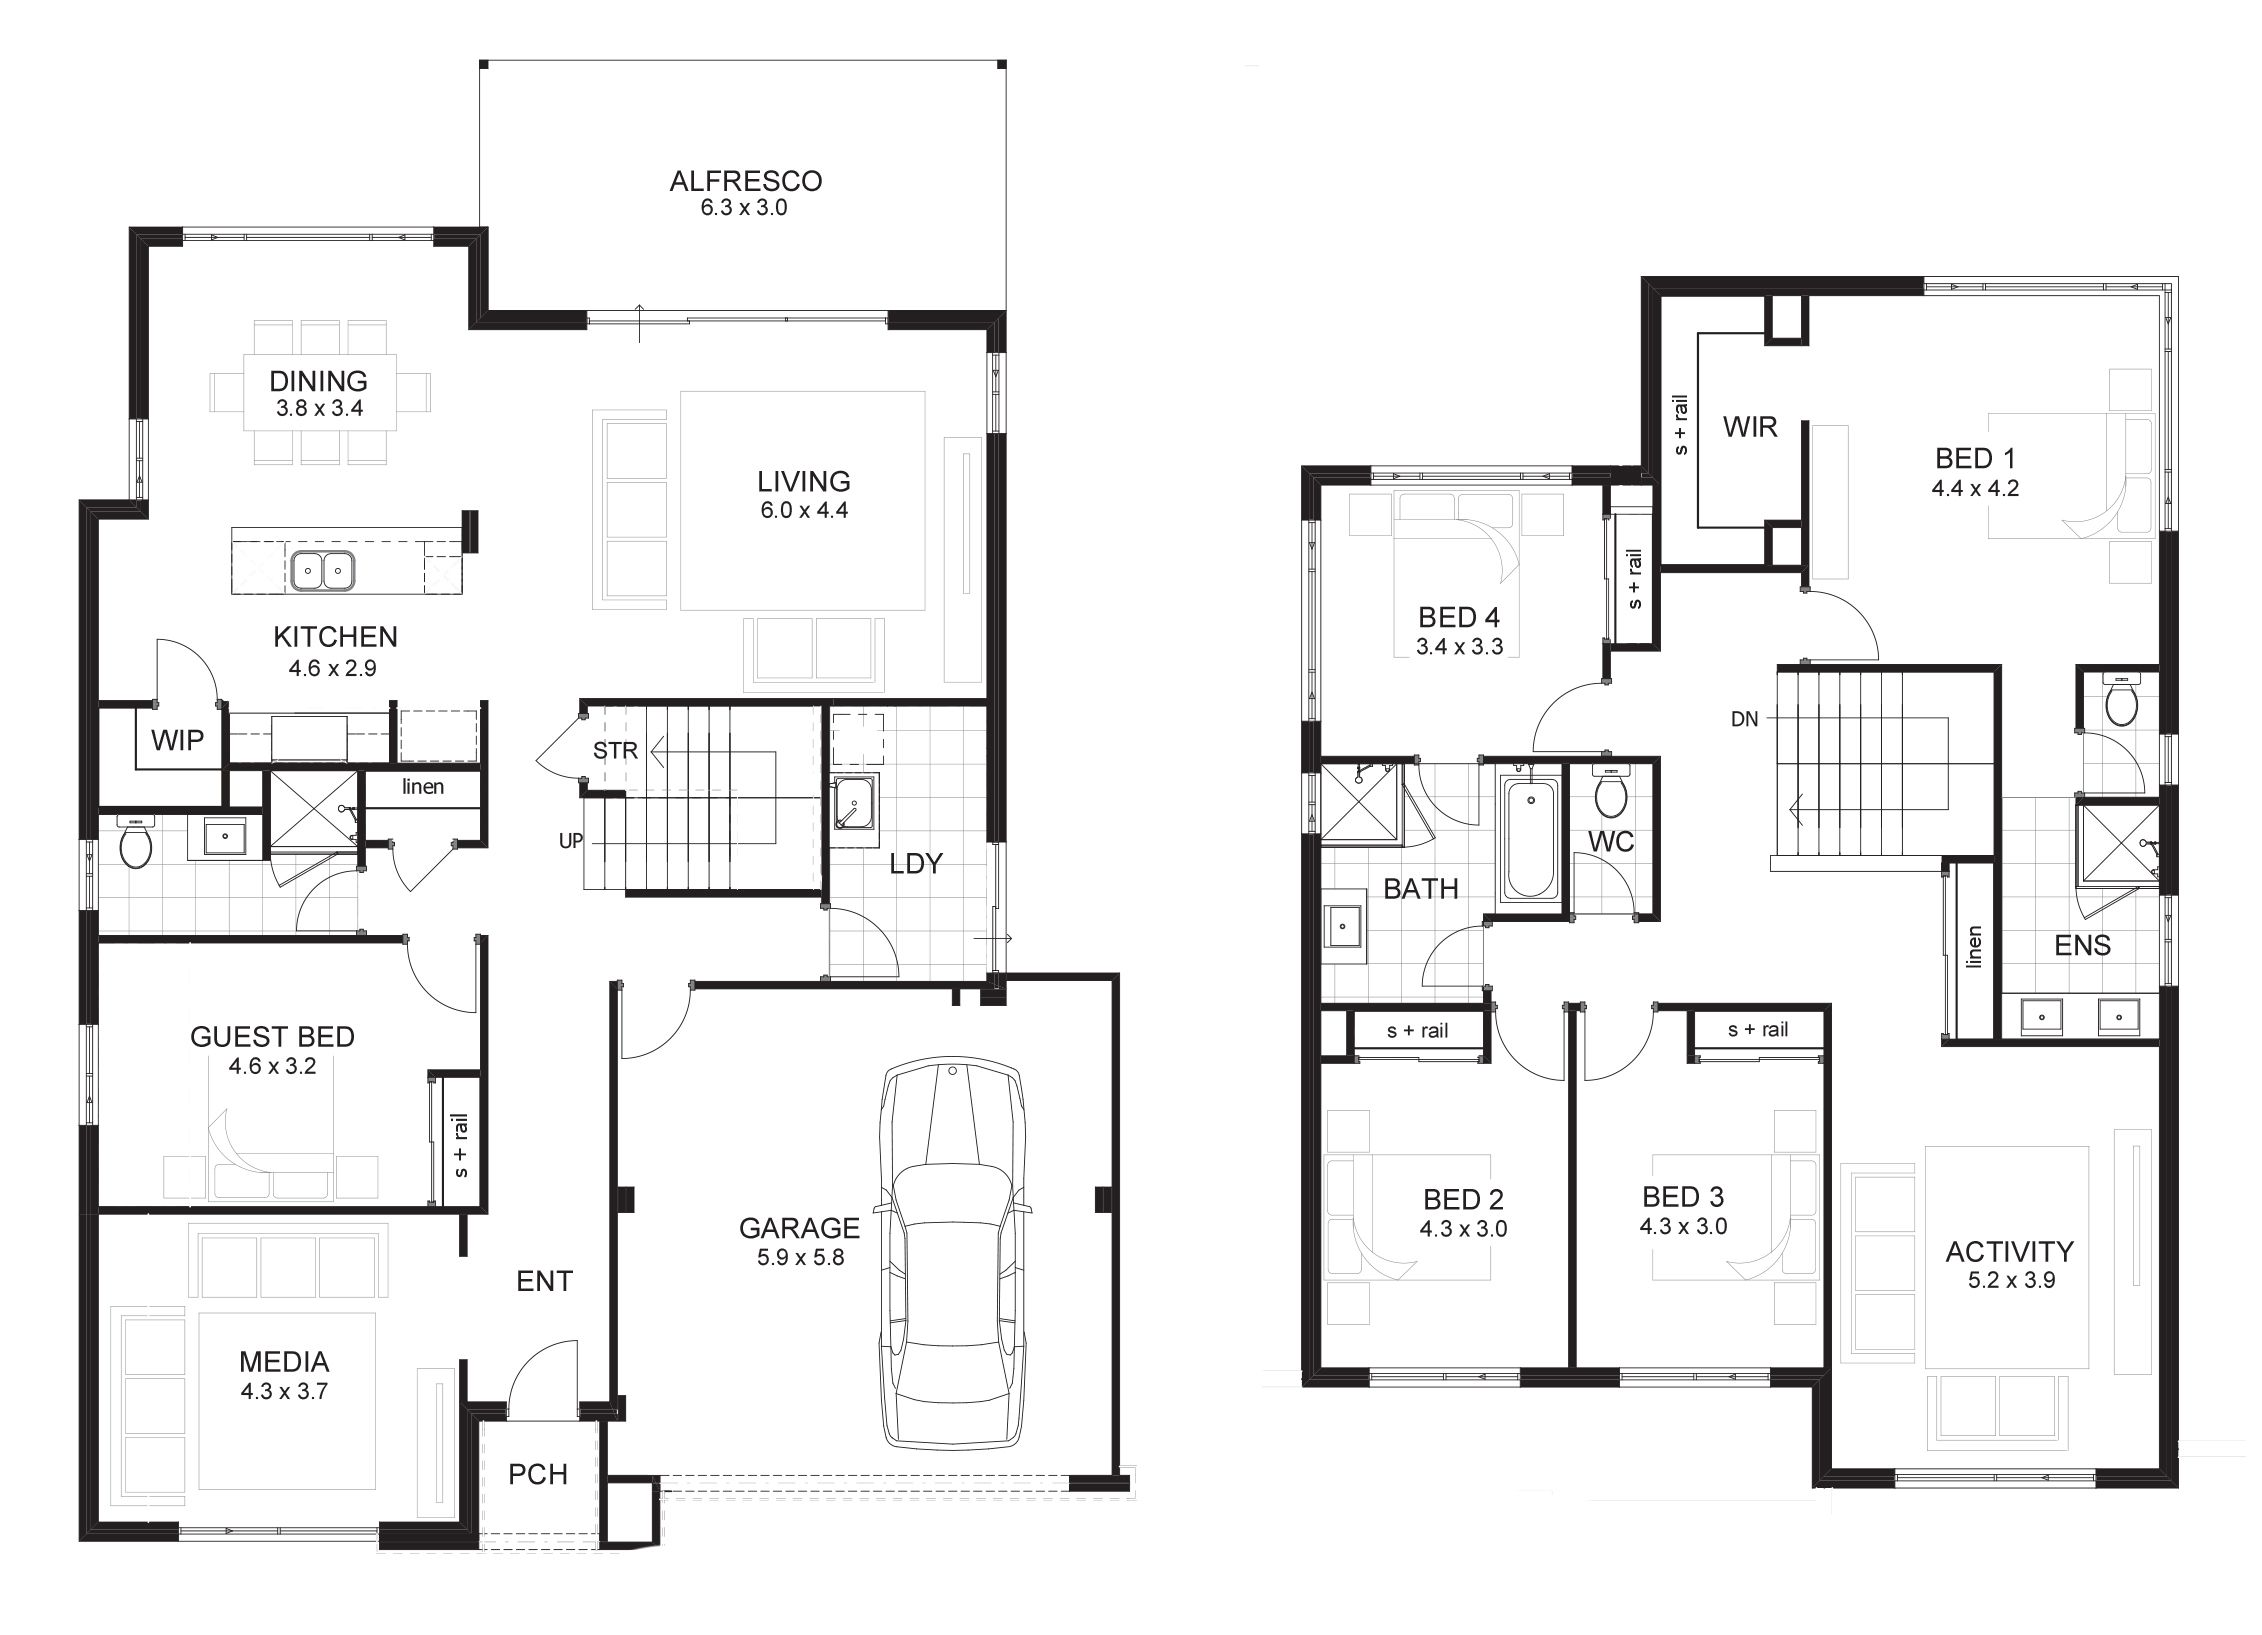 6 bedroom house plans perth pinterest 6 bedroom house designs